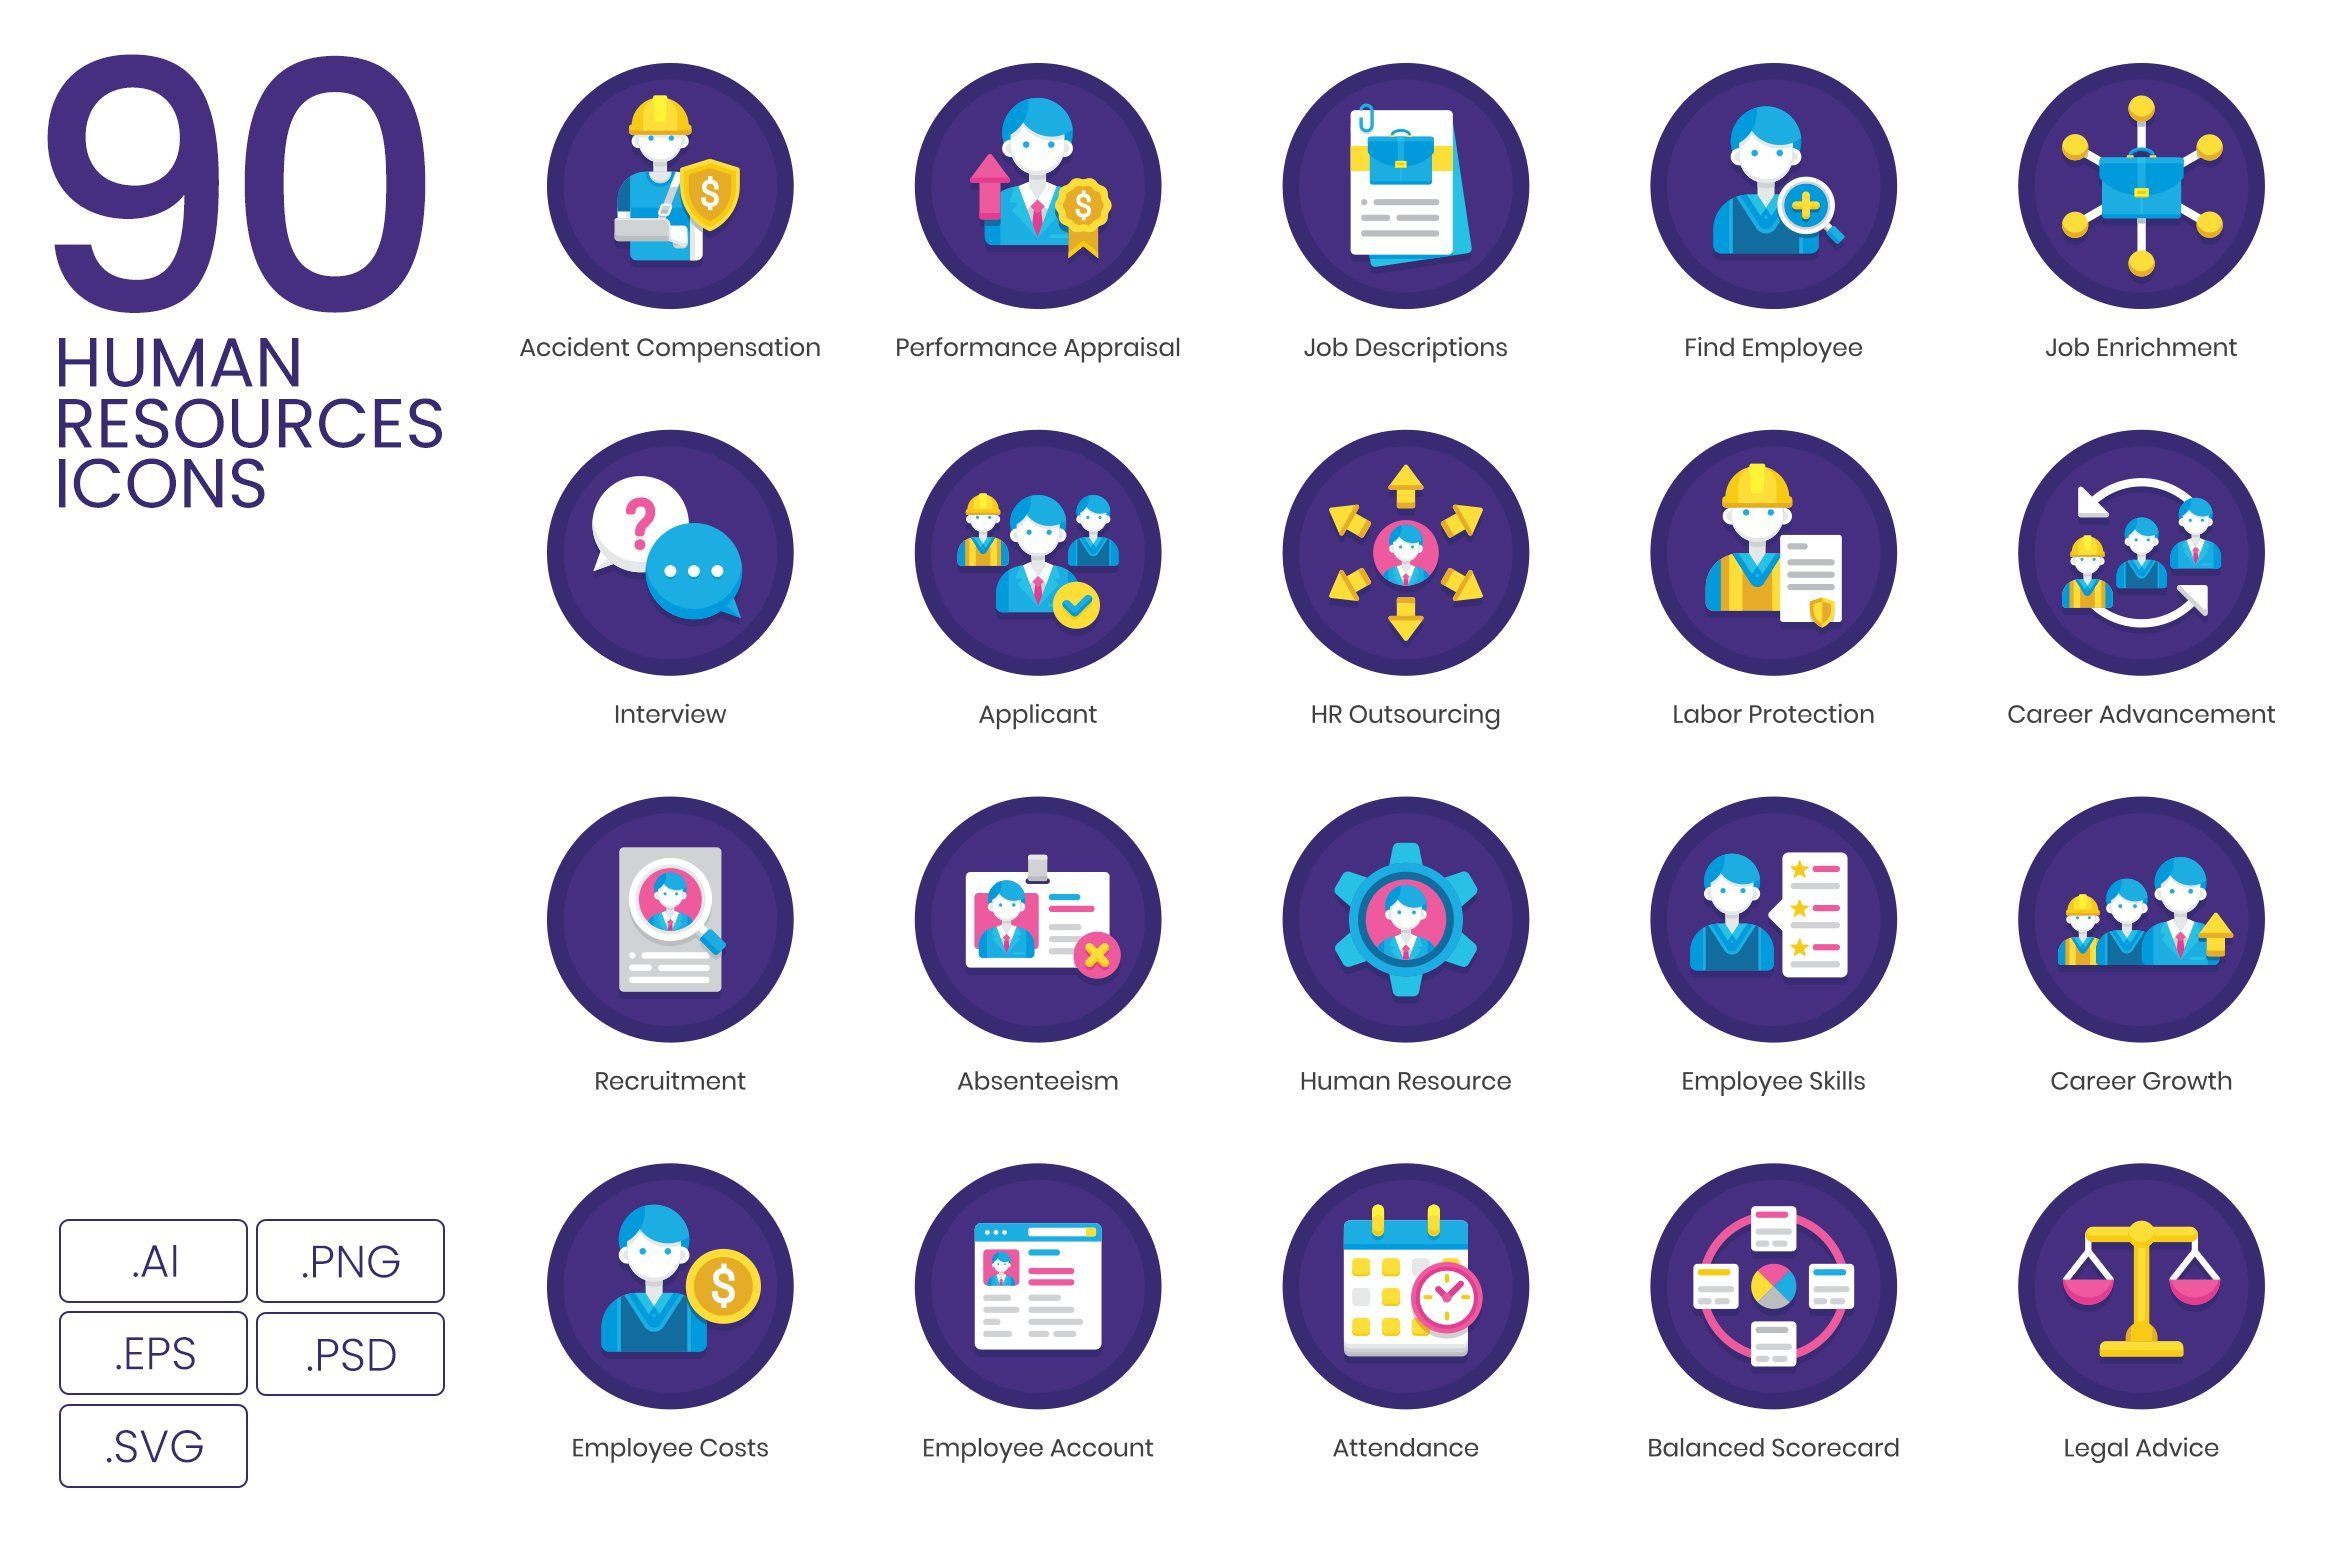 90 Human Resources Icons Resources Icon Marketing Icon Business Icon